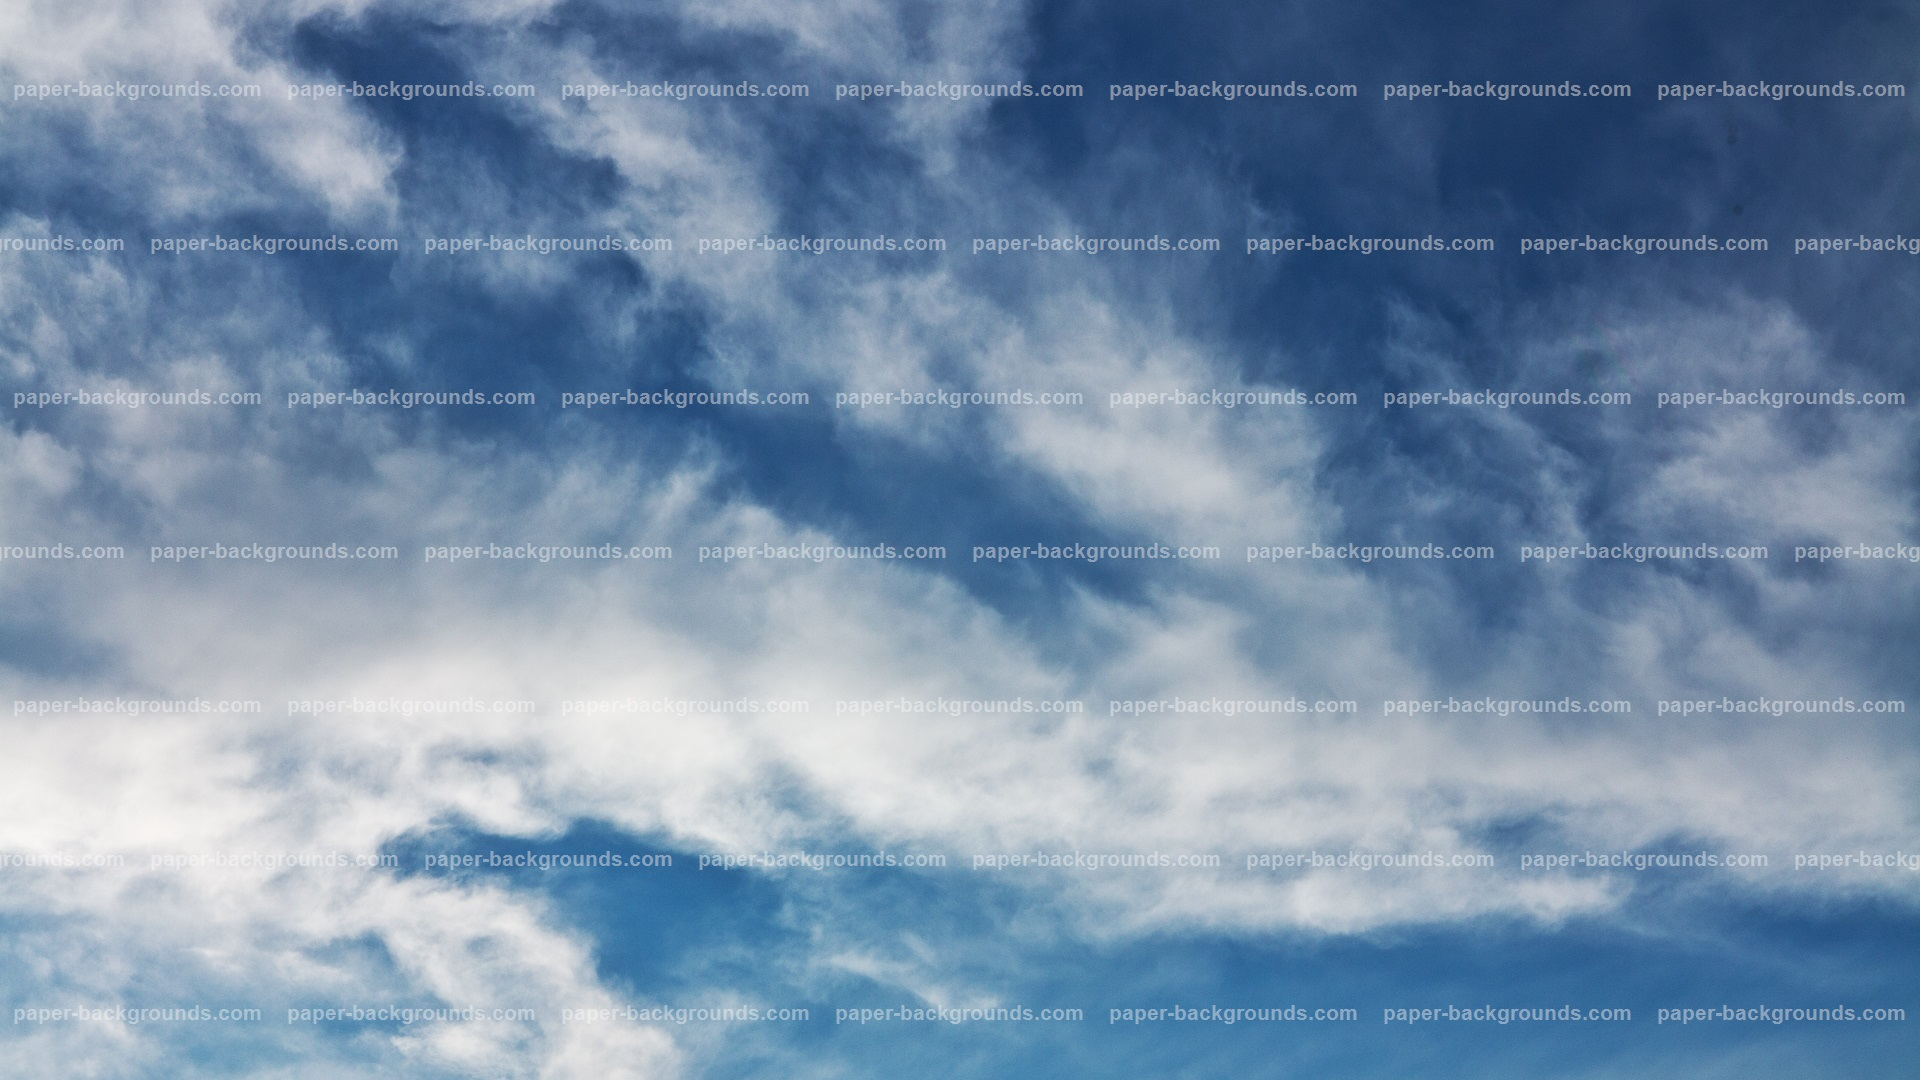 Blue Clouds Sky Backgroud HD